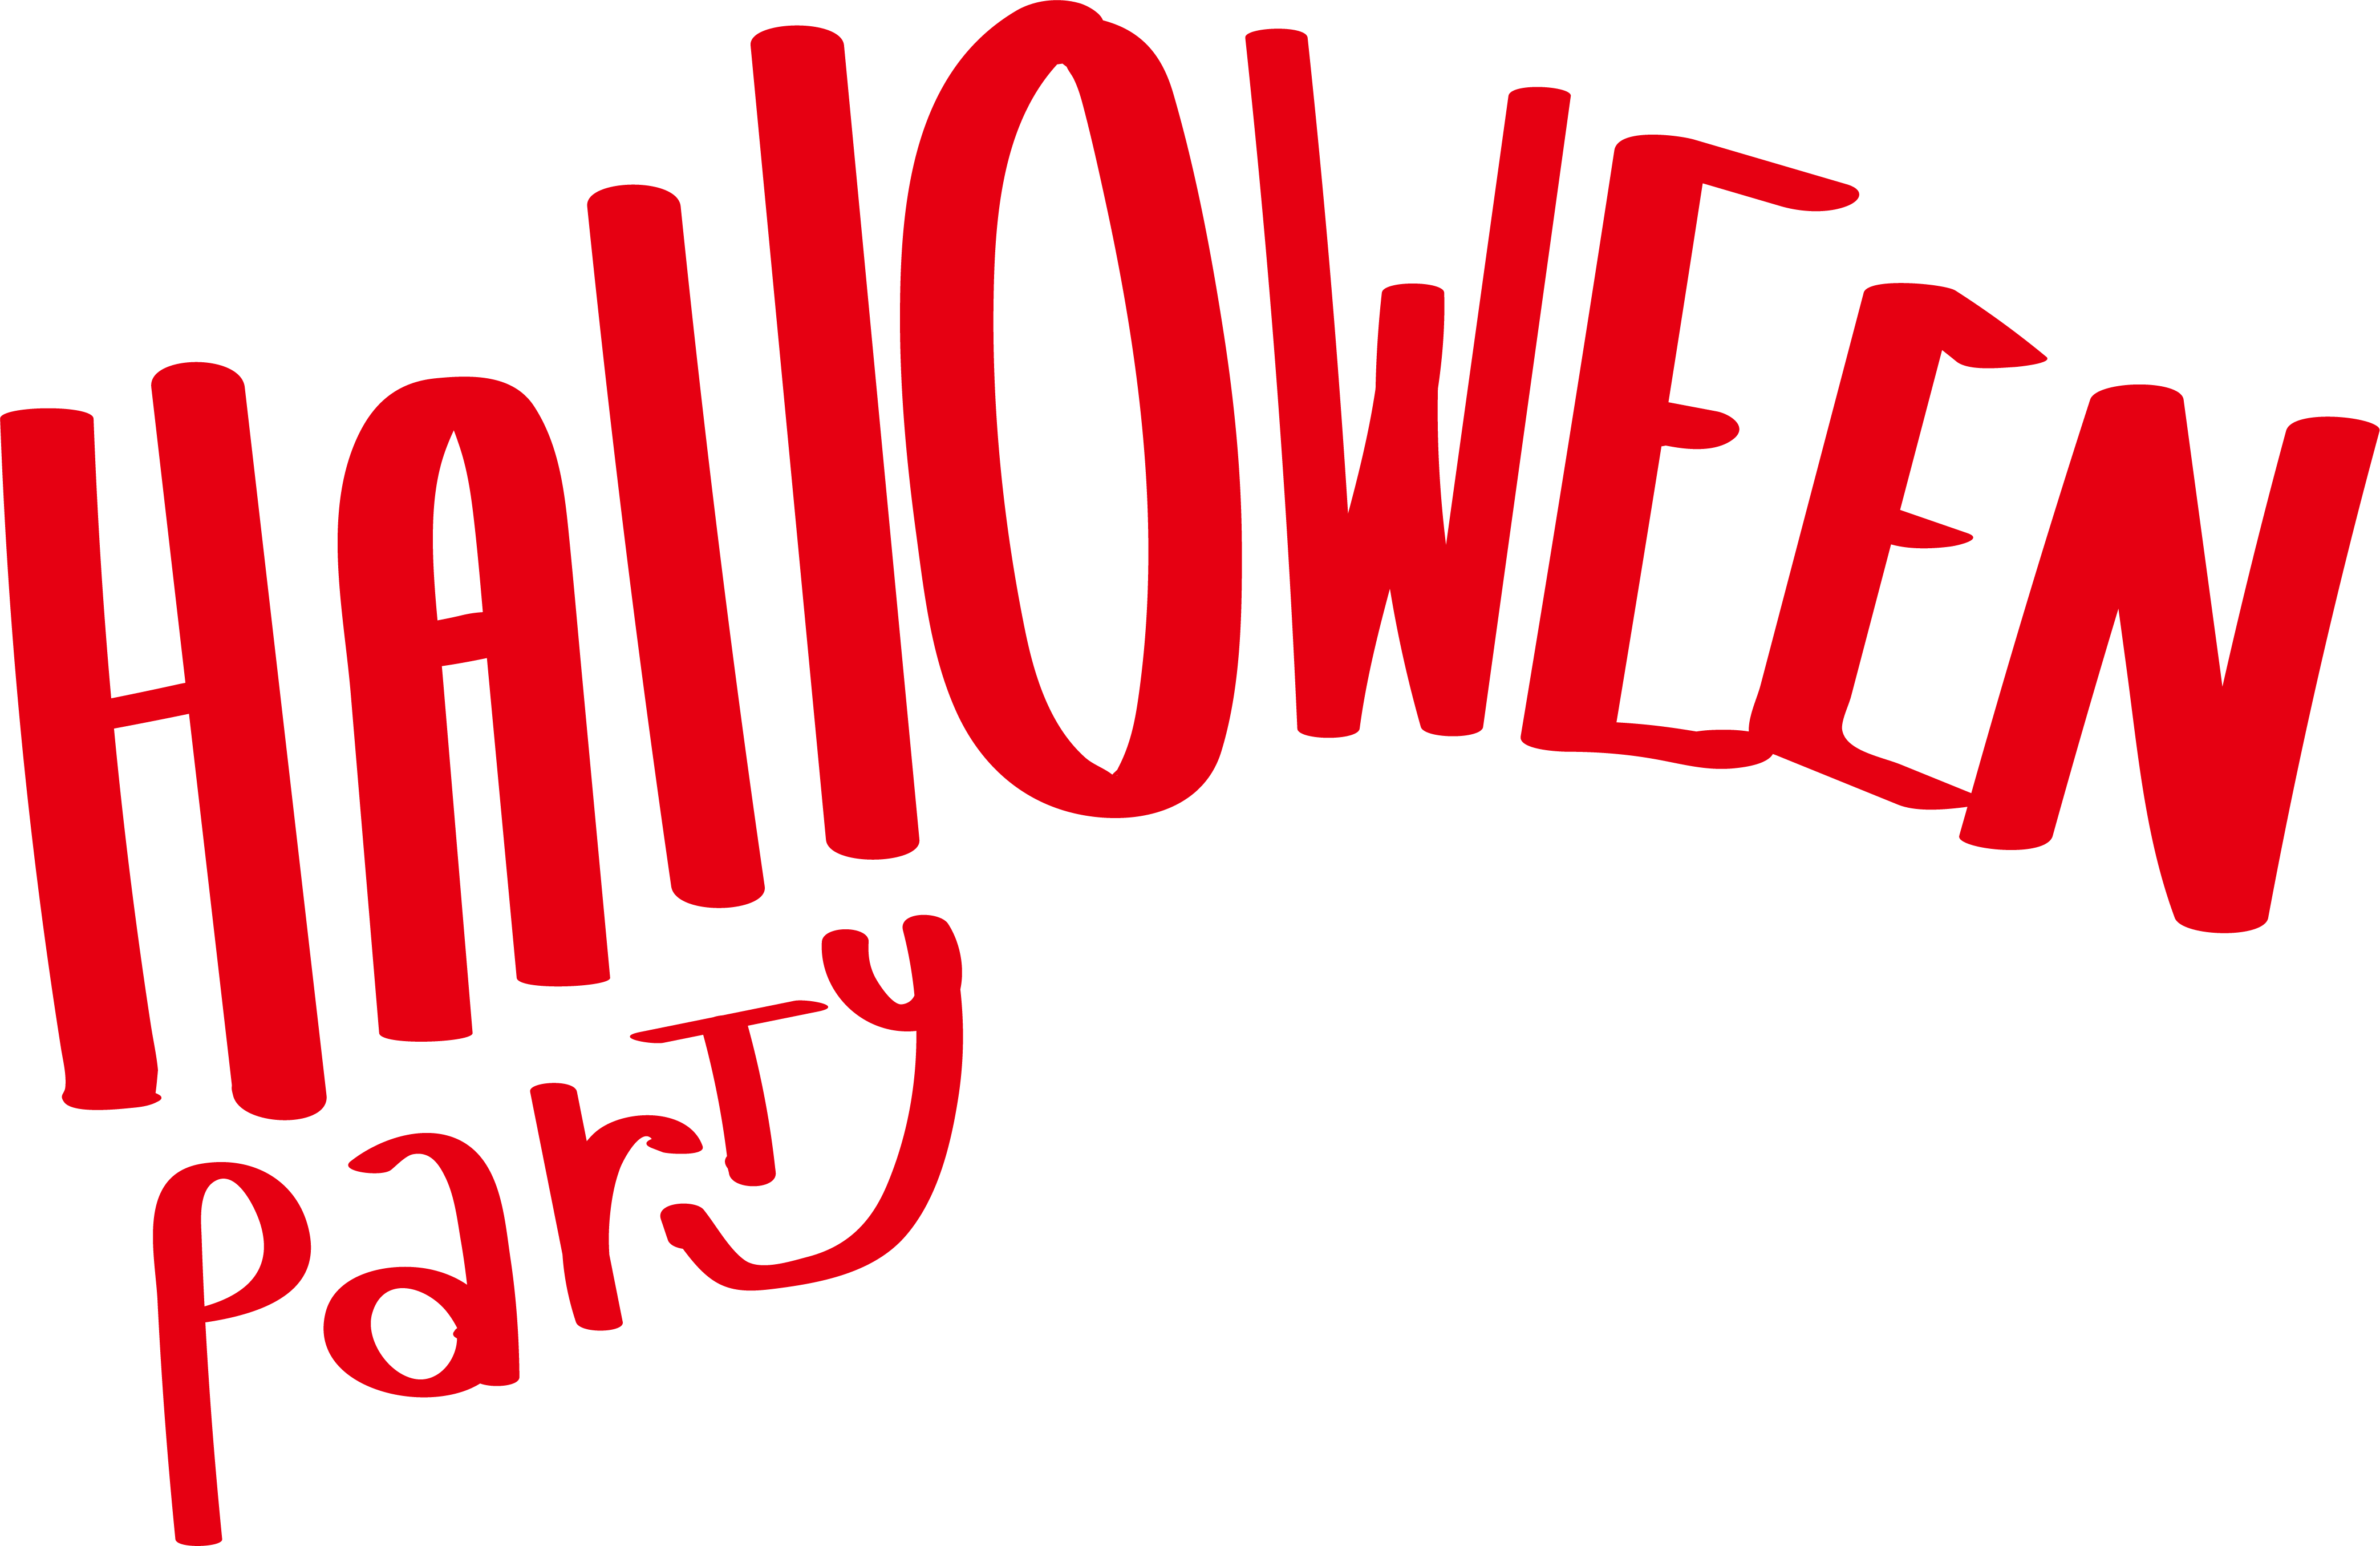 Microsoft clipart halloween image library download Halloween Microsoft Word Clip art - Red Halloween party art words ... image library download